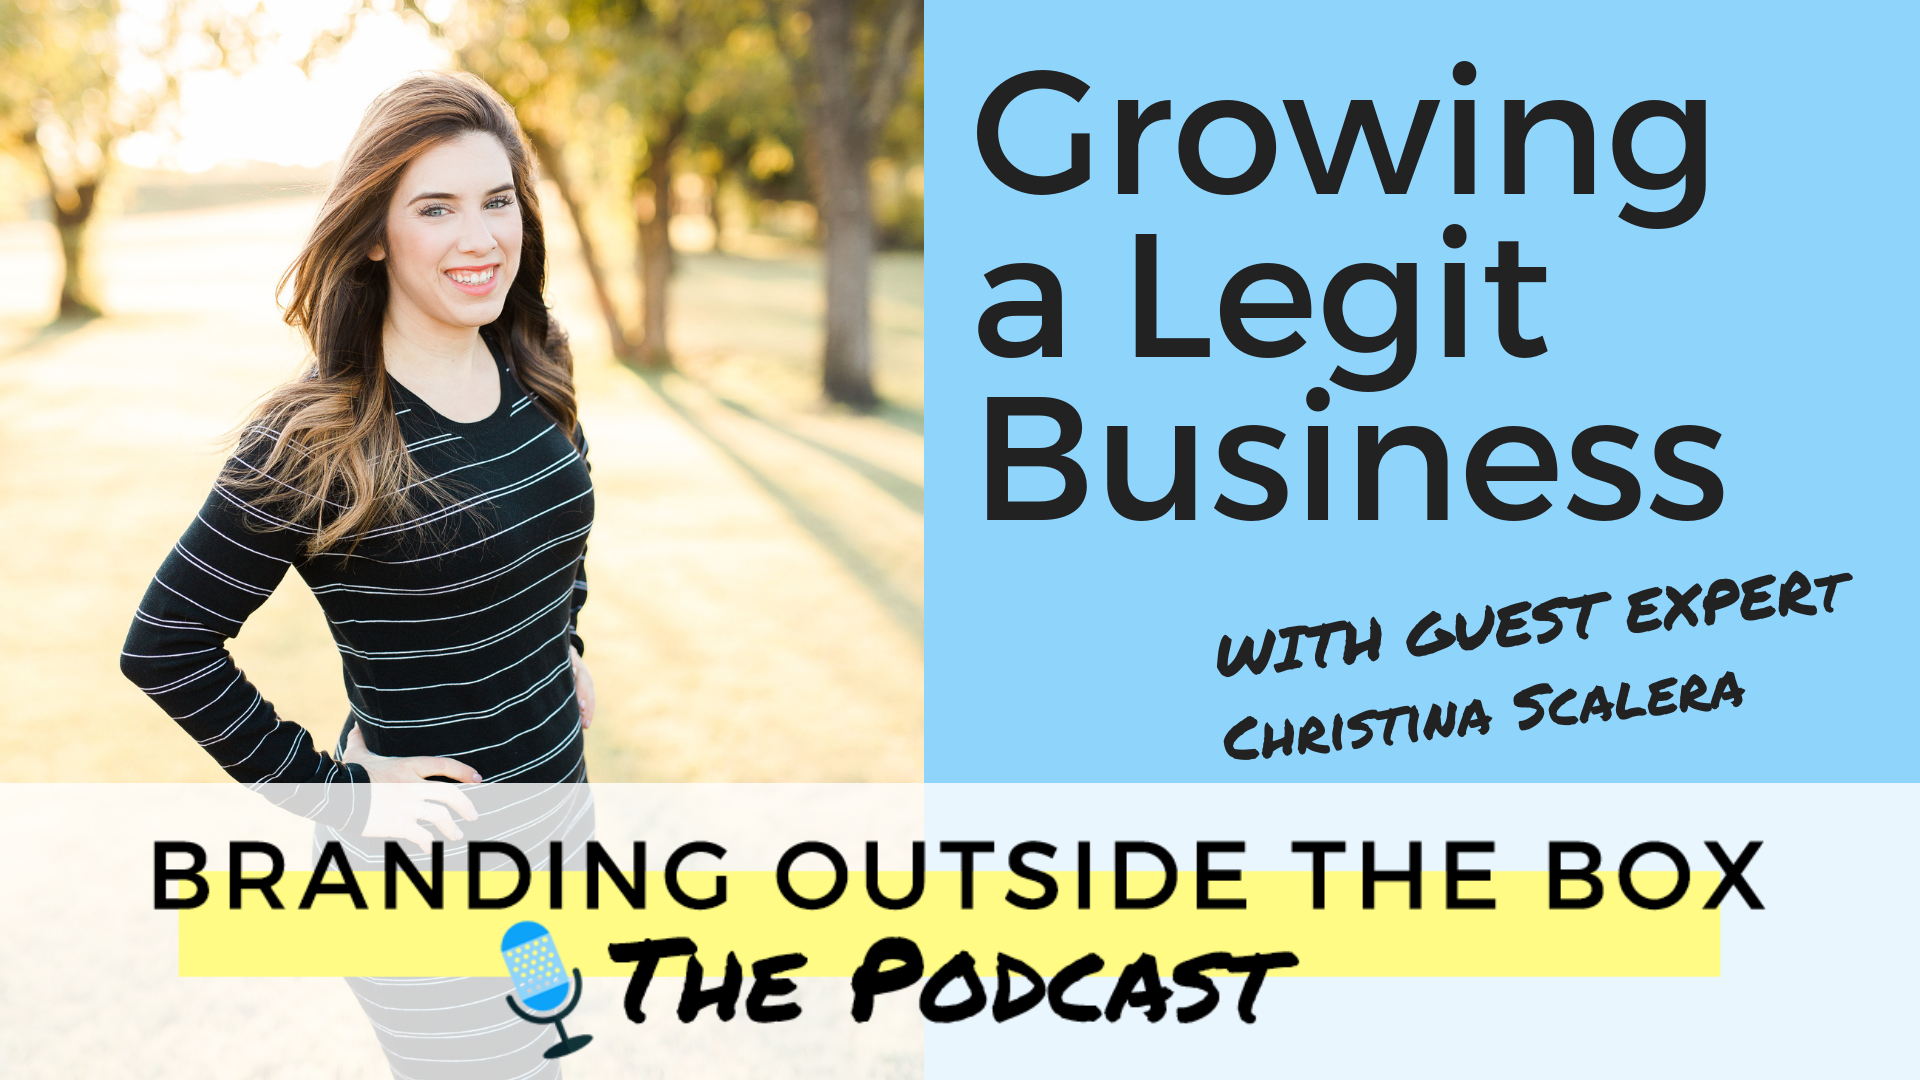 Growing a Legit Business with Christina Scalera